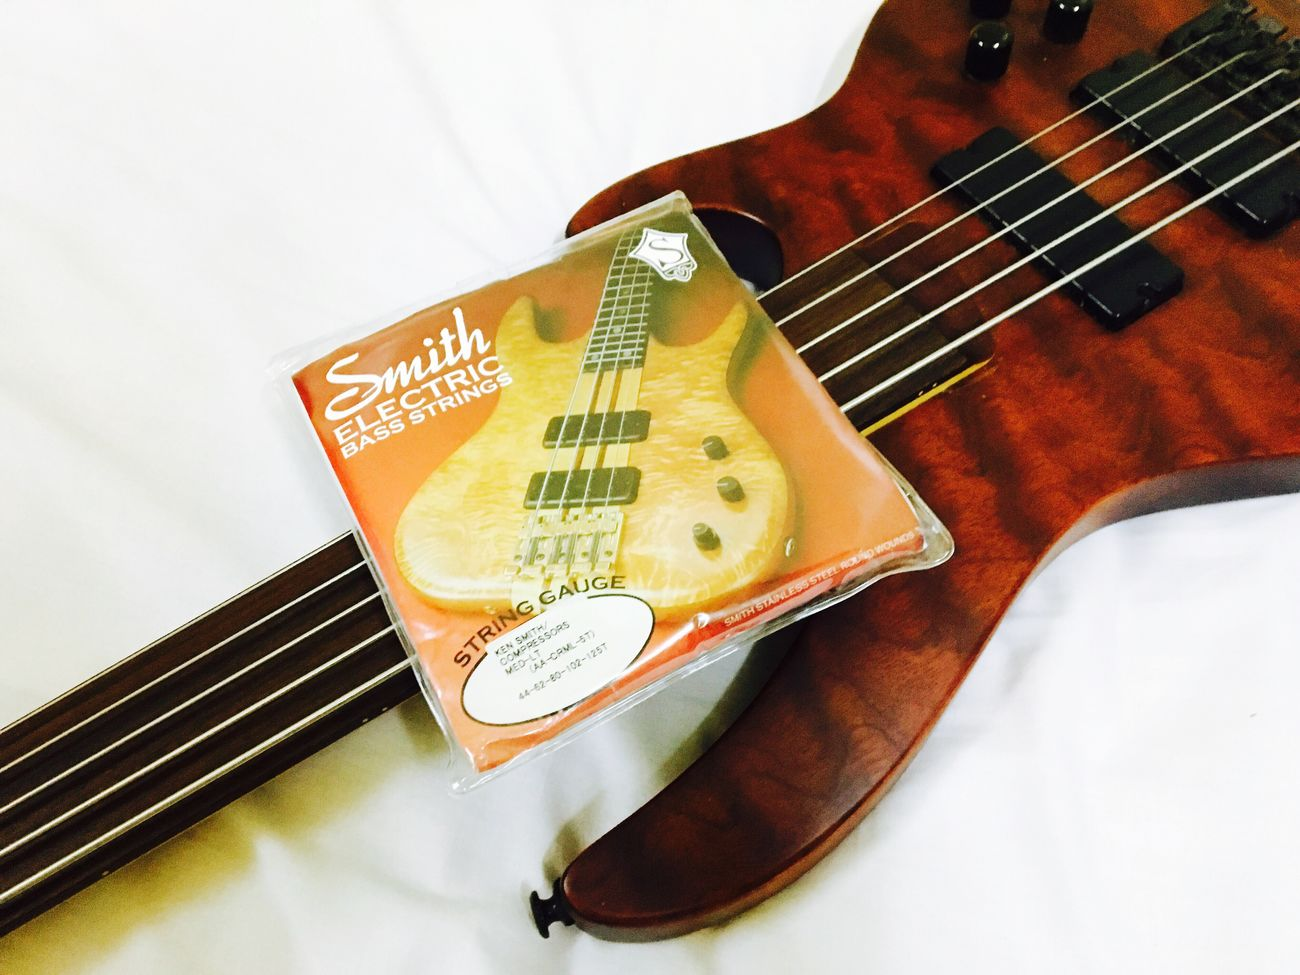 Brice Fretless Bass Guitar and Ken Smith Strings